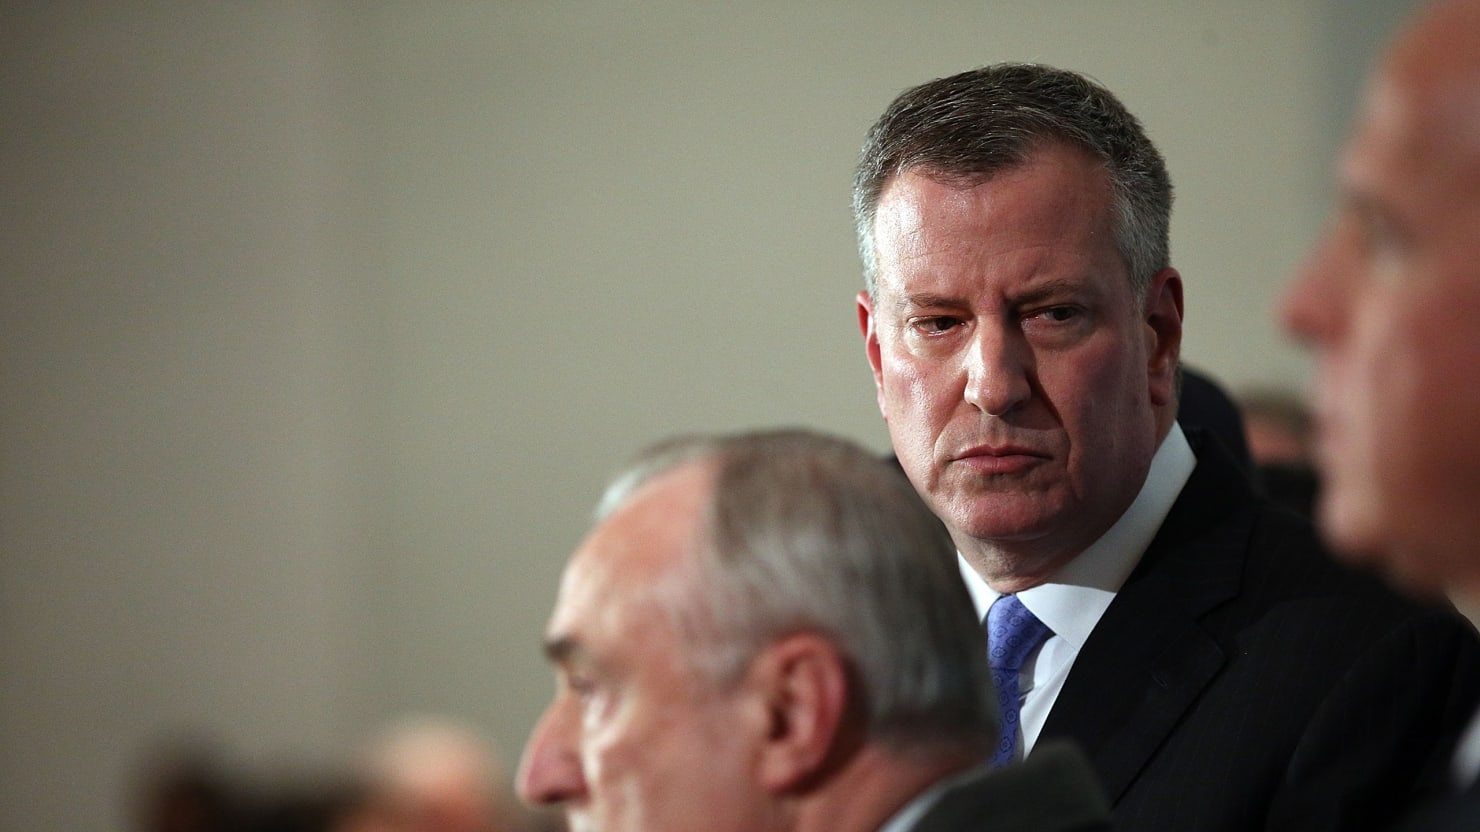 The NY Police Union's Vile War with Mayor De Blasio